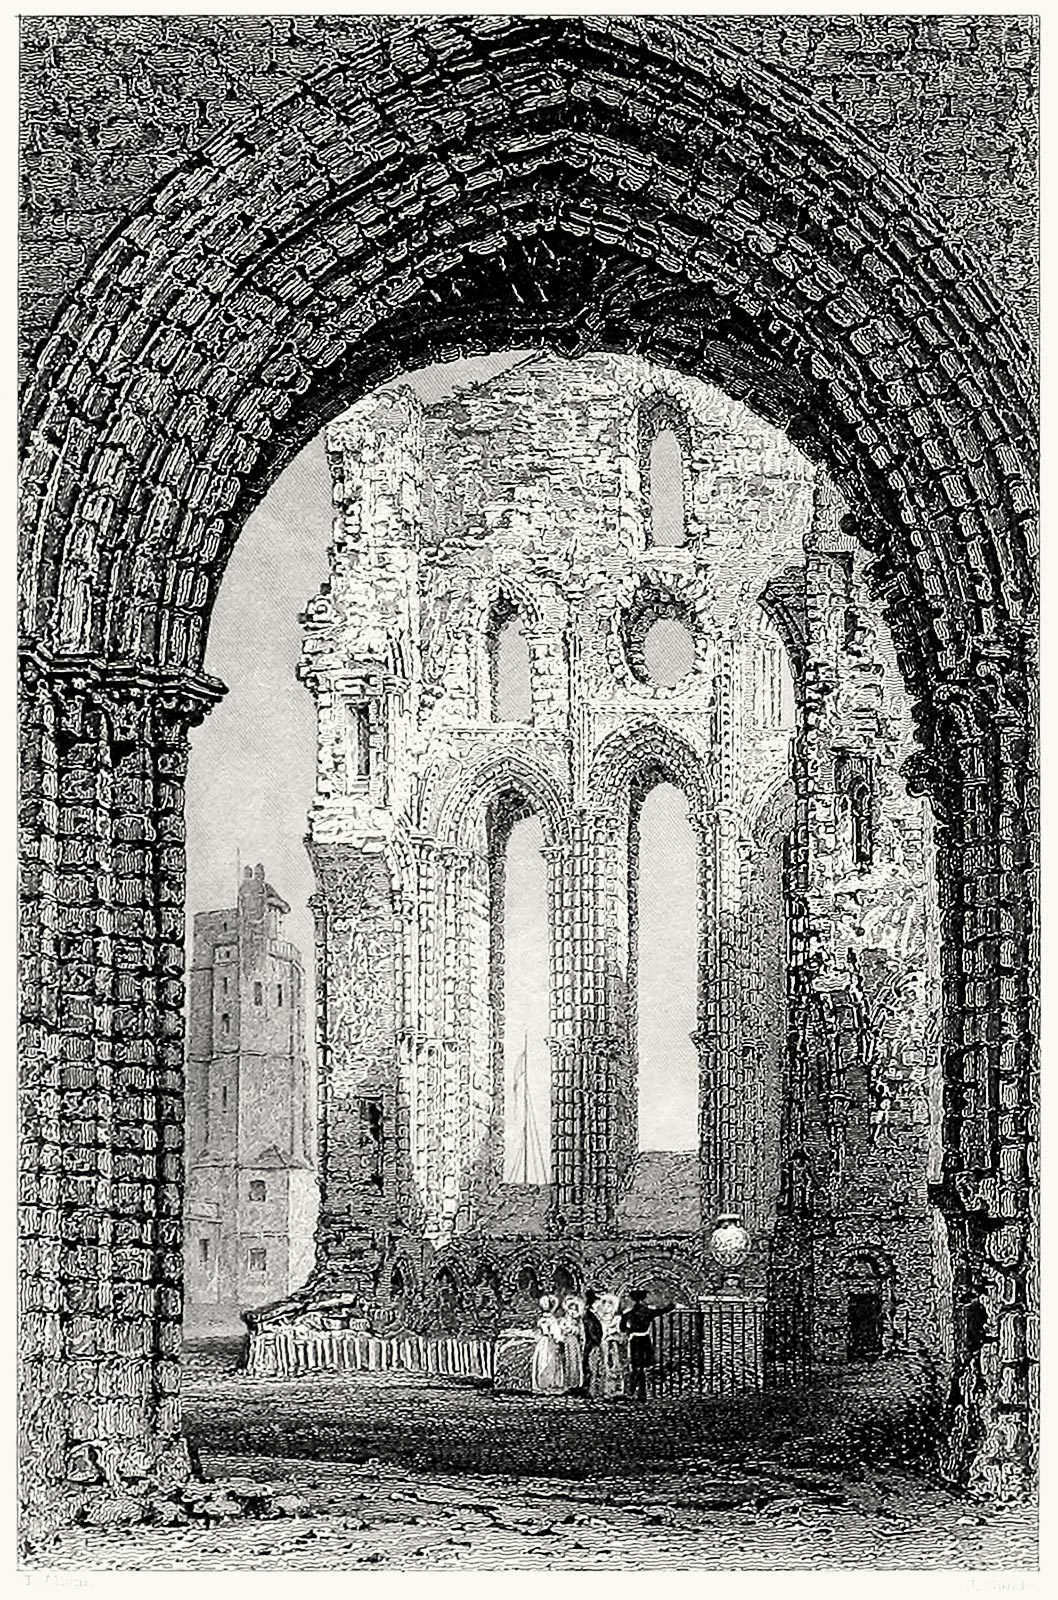 oldbookillustrations:  Tynemouth priory and castle, Northumberland. Thomas Allom, from Westmorland, Cumberland, Durham, and Northumberland, illustrated, by Thomas Rose, London, 1832. (Source: archive.org)